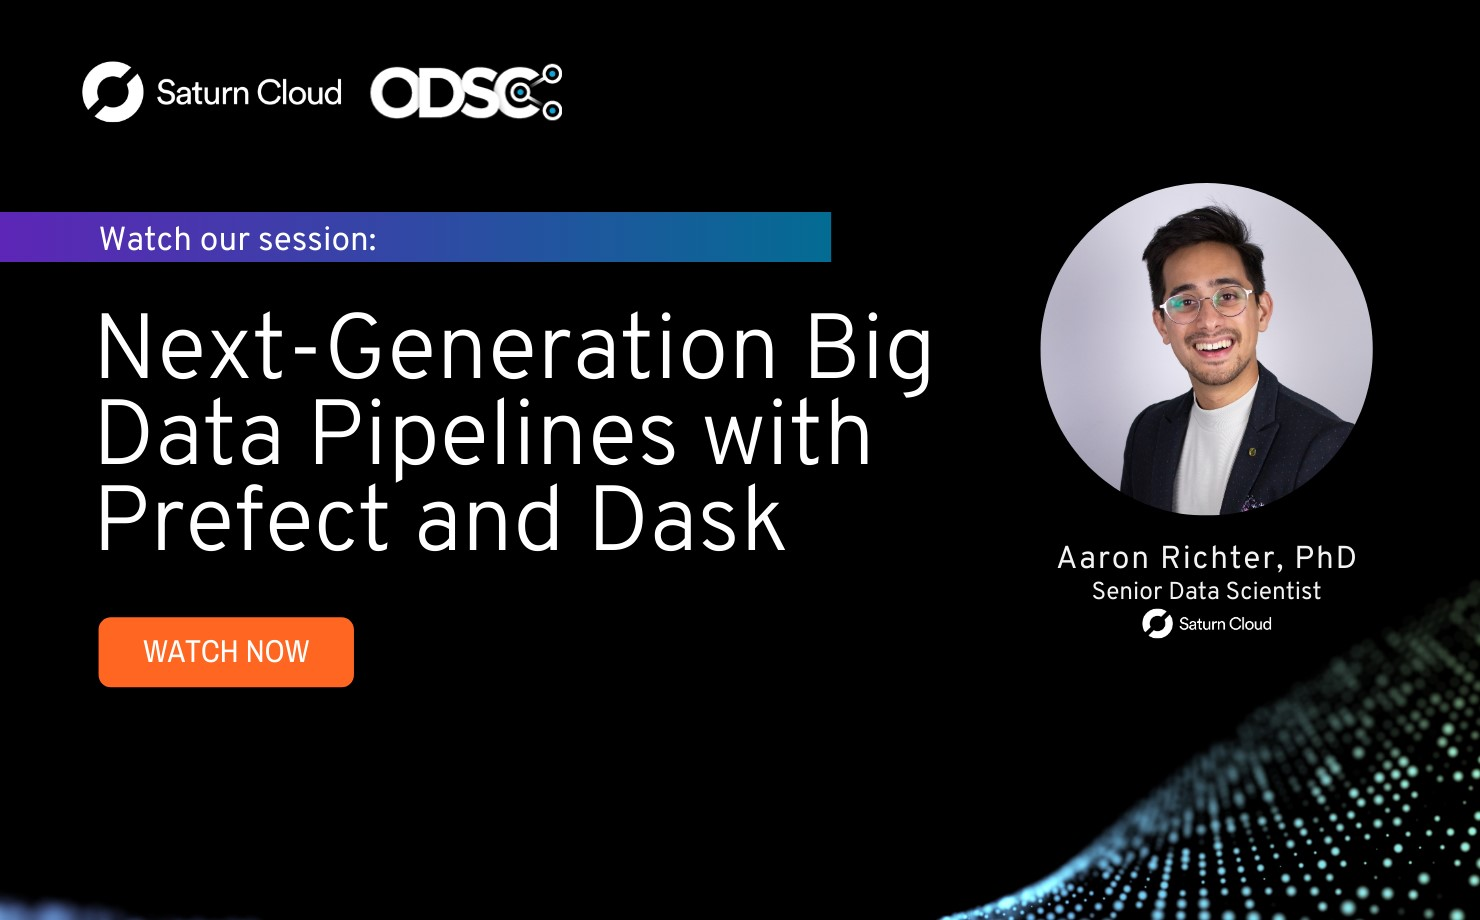 Featured Image for Next-Generation Big Data Pipelines with Prefect and Dask